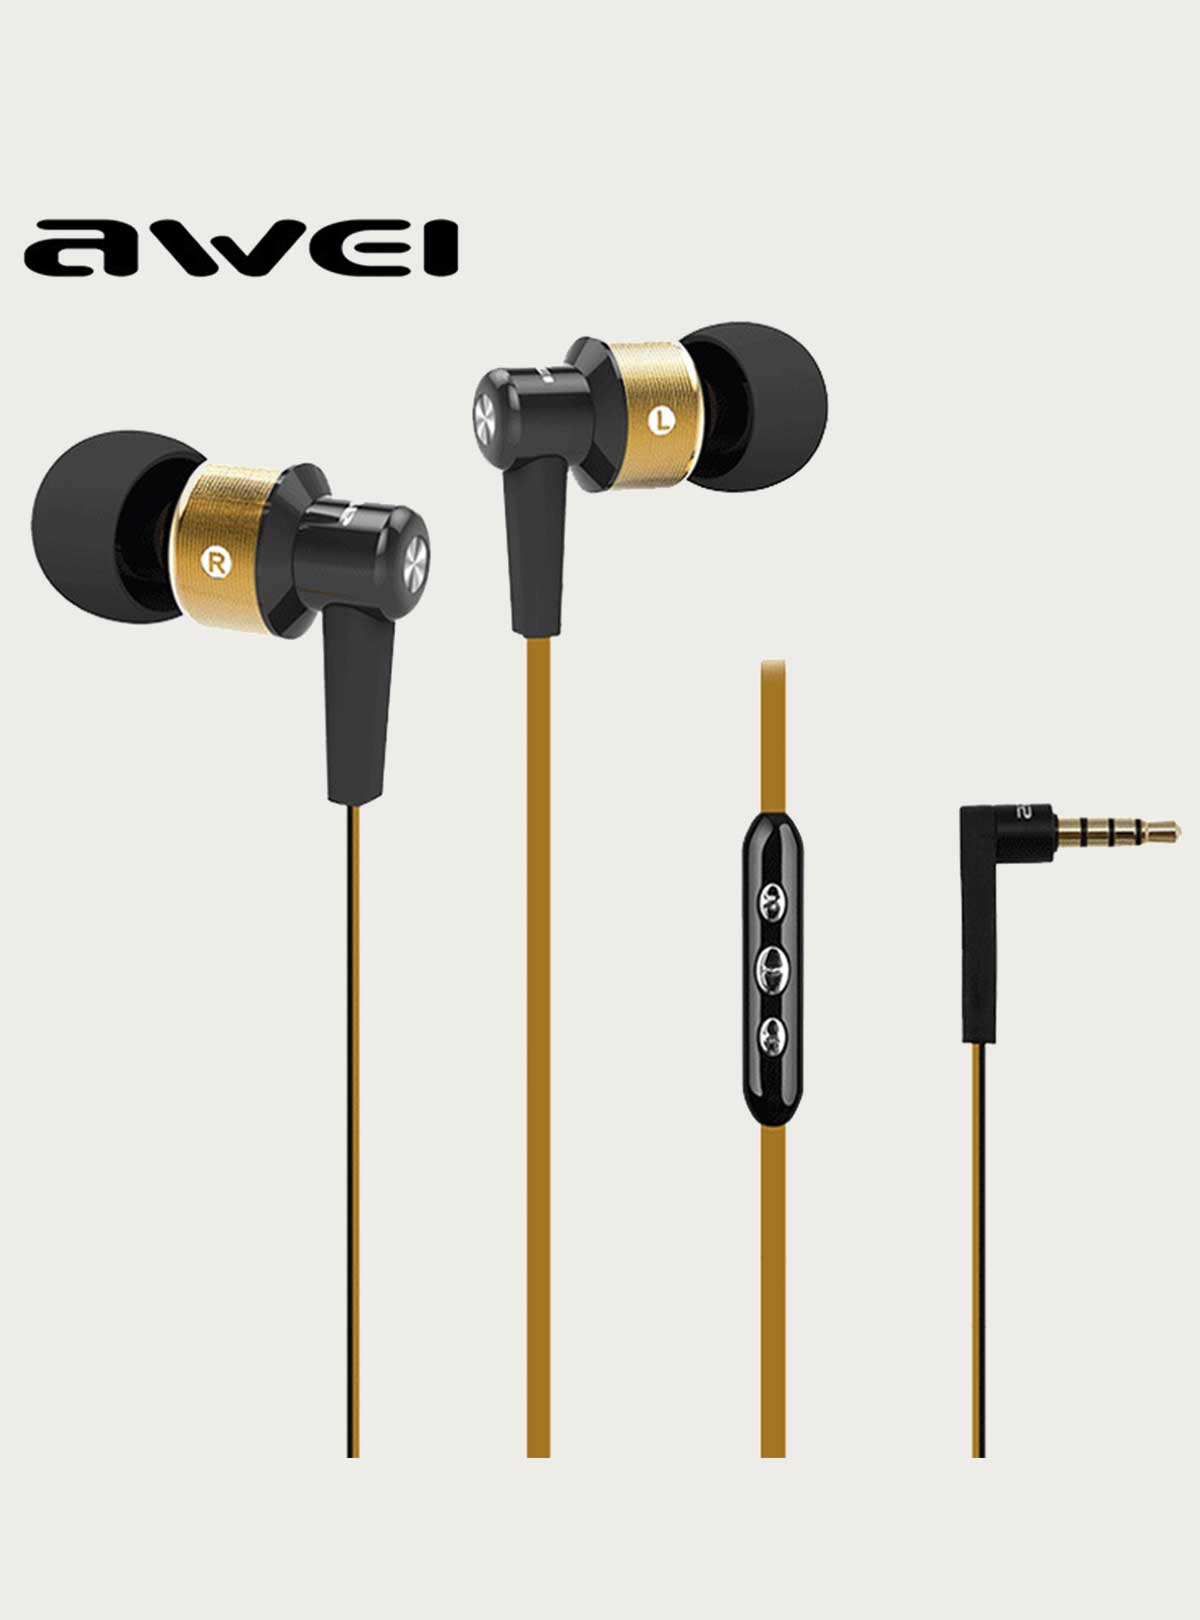 Super Bass Stylish Sound Awei ES 55Vi Earphone with MIC